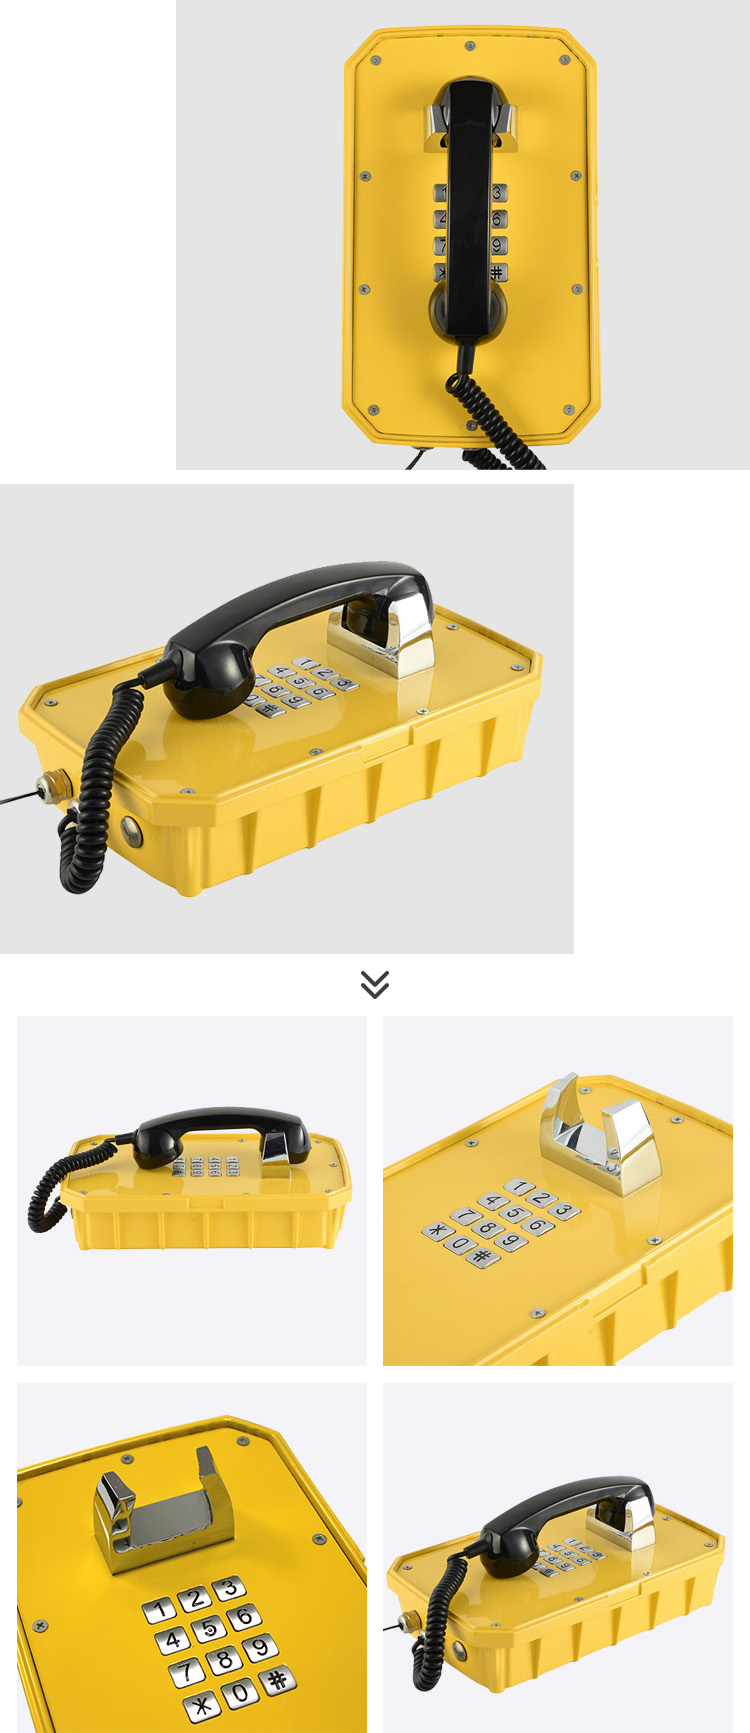 weatherproof telephone JWAT920